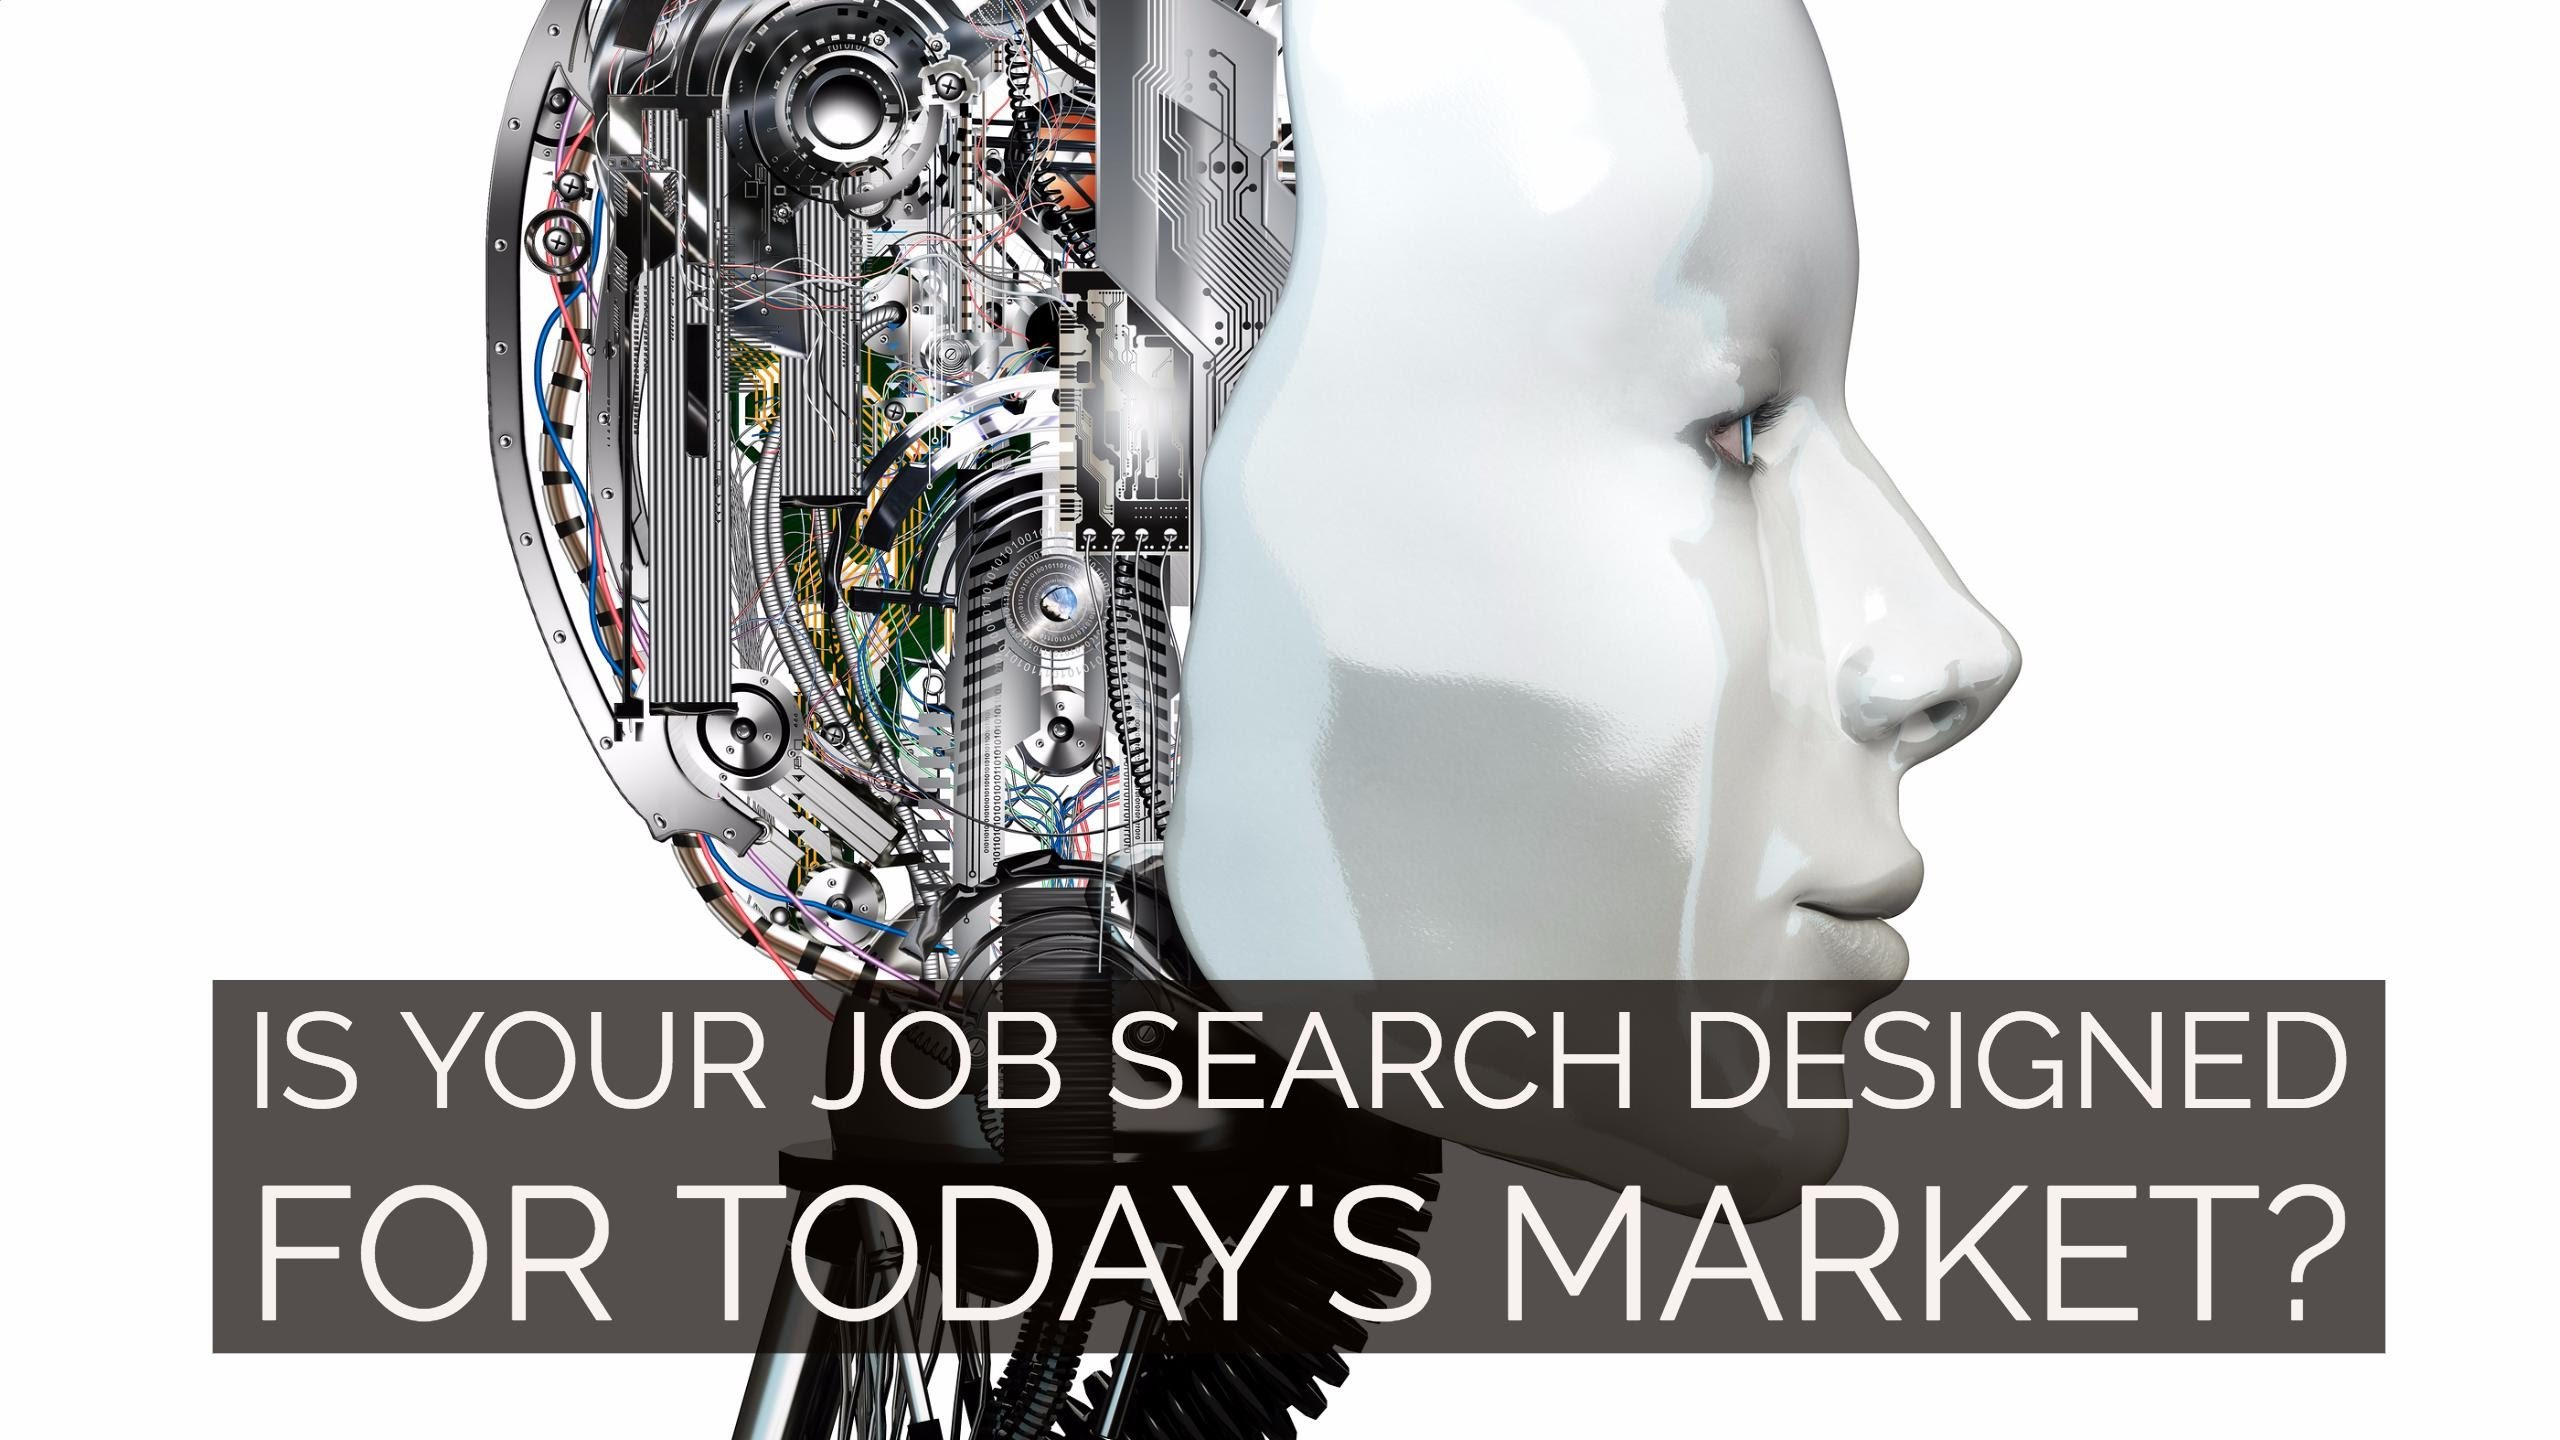 NextGen Job Search – Finding a Job in Today's Market